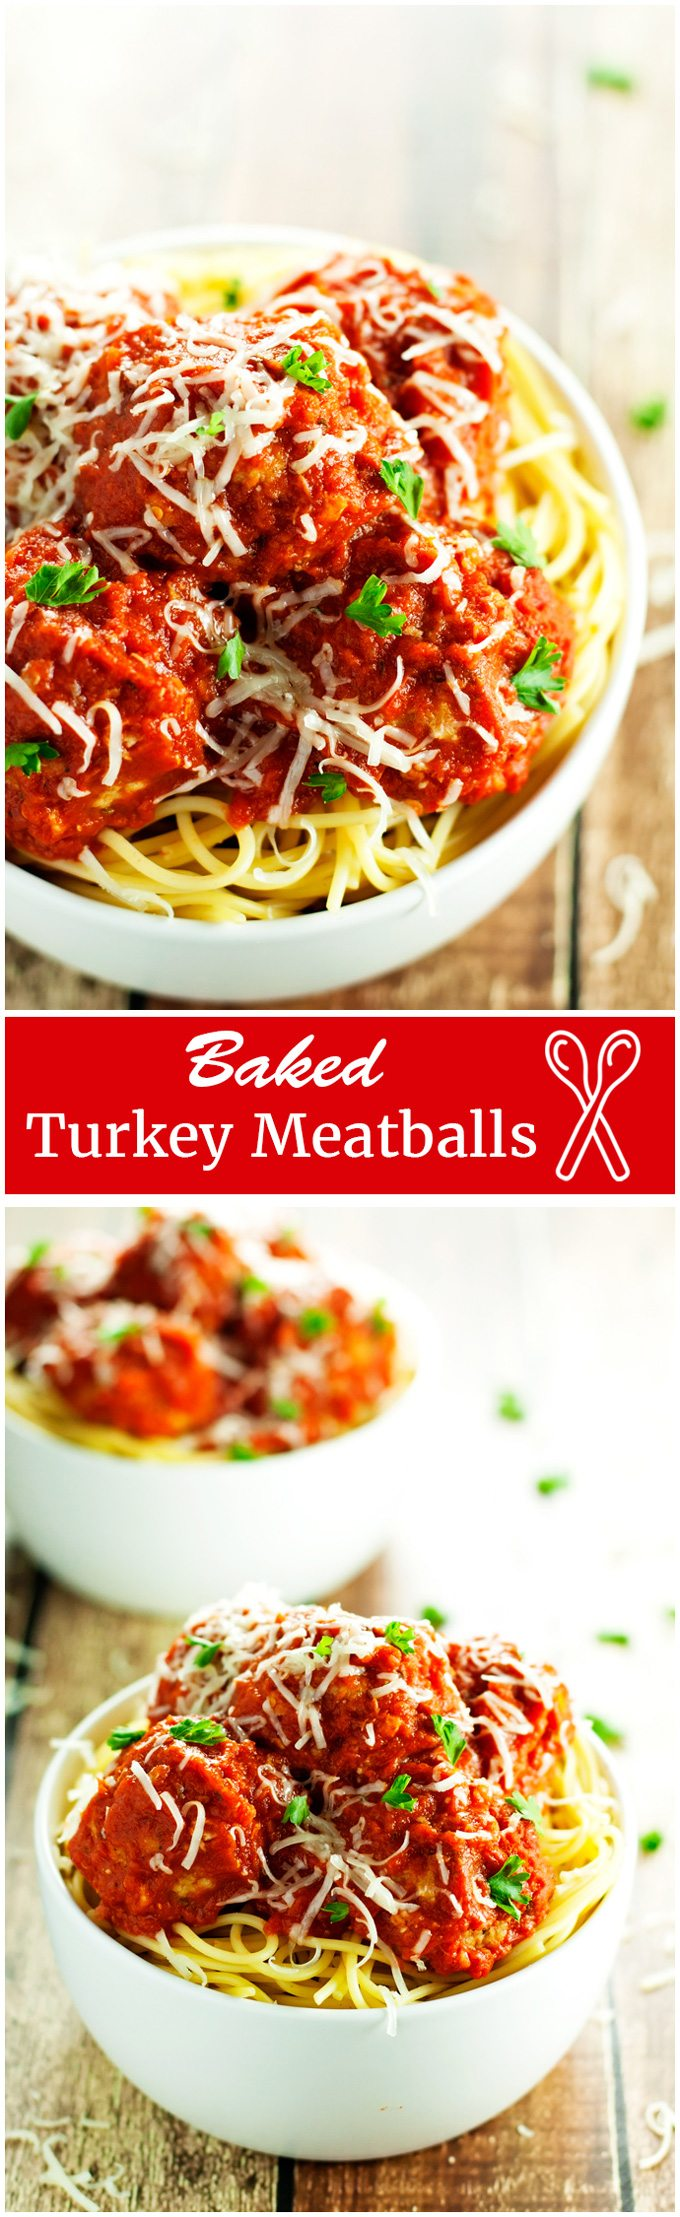 baked turkey meatballs served over spaghetti, smothered in homemade tomato sauce and topped with parmesan cheese.